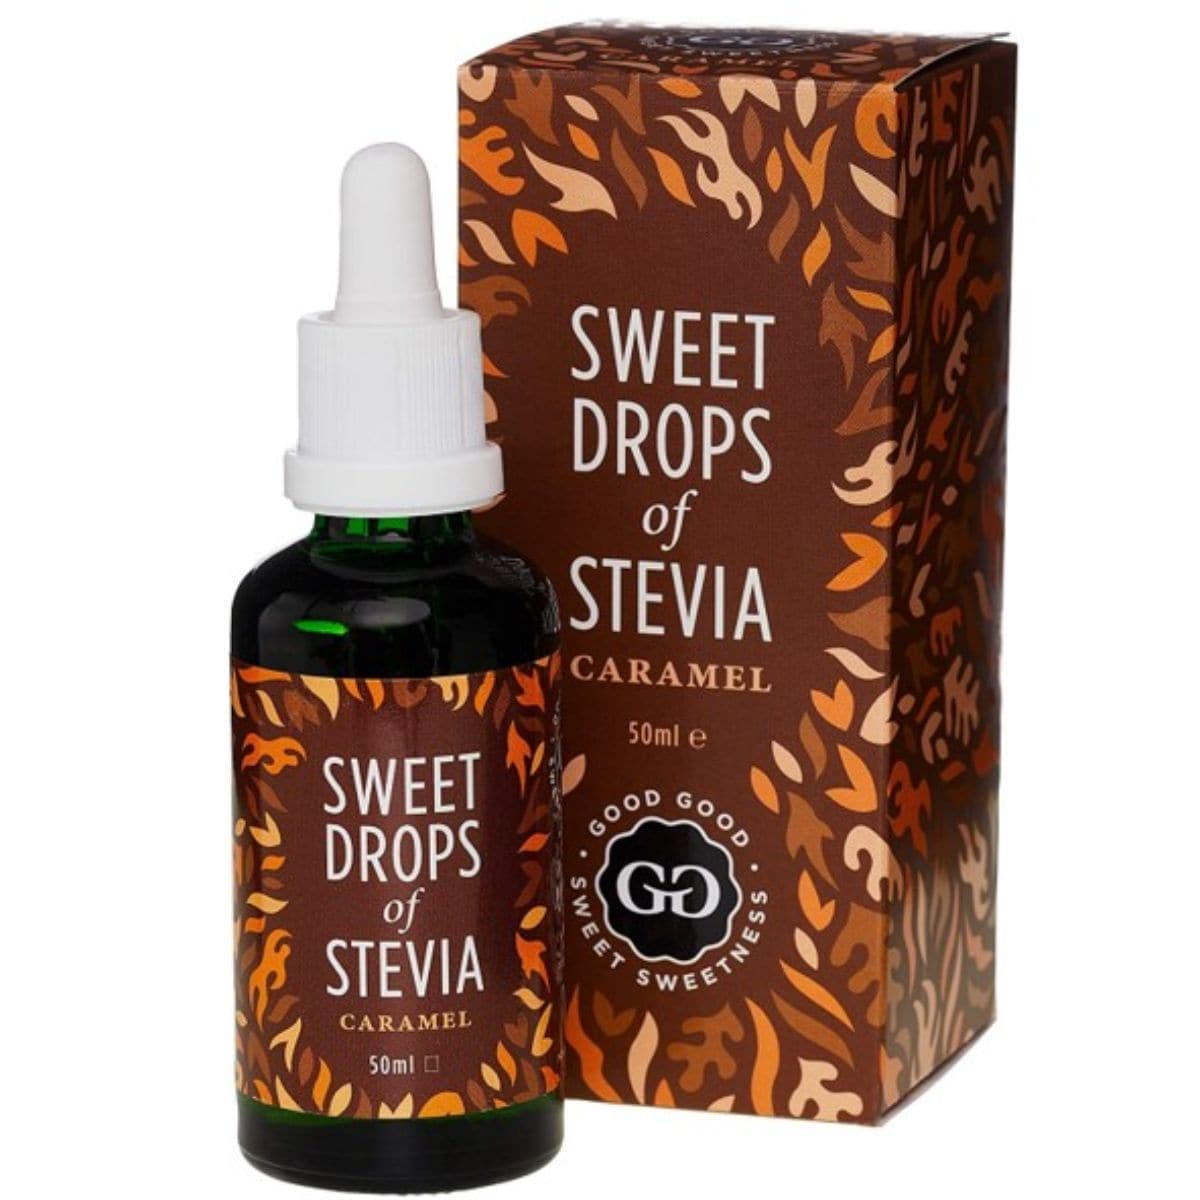 Good Good Caramel Stevia Drops - 50ml